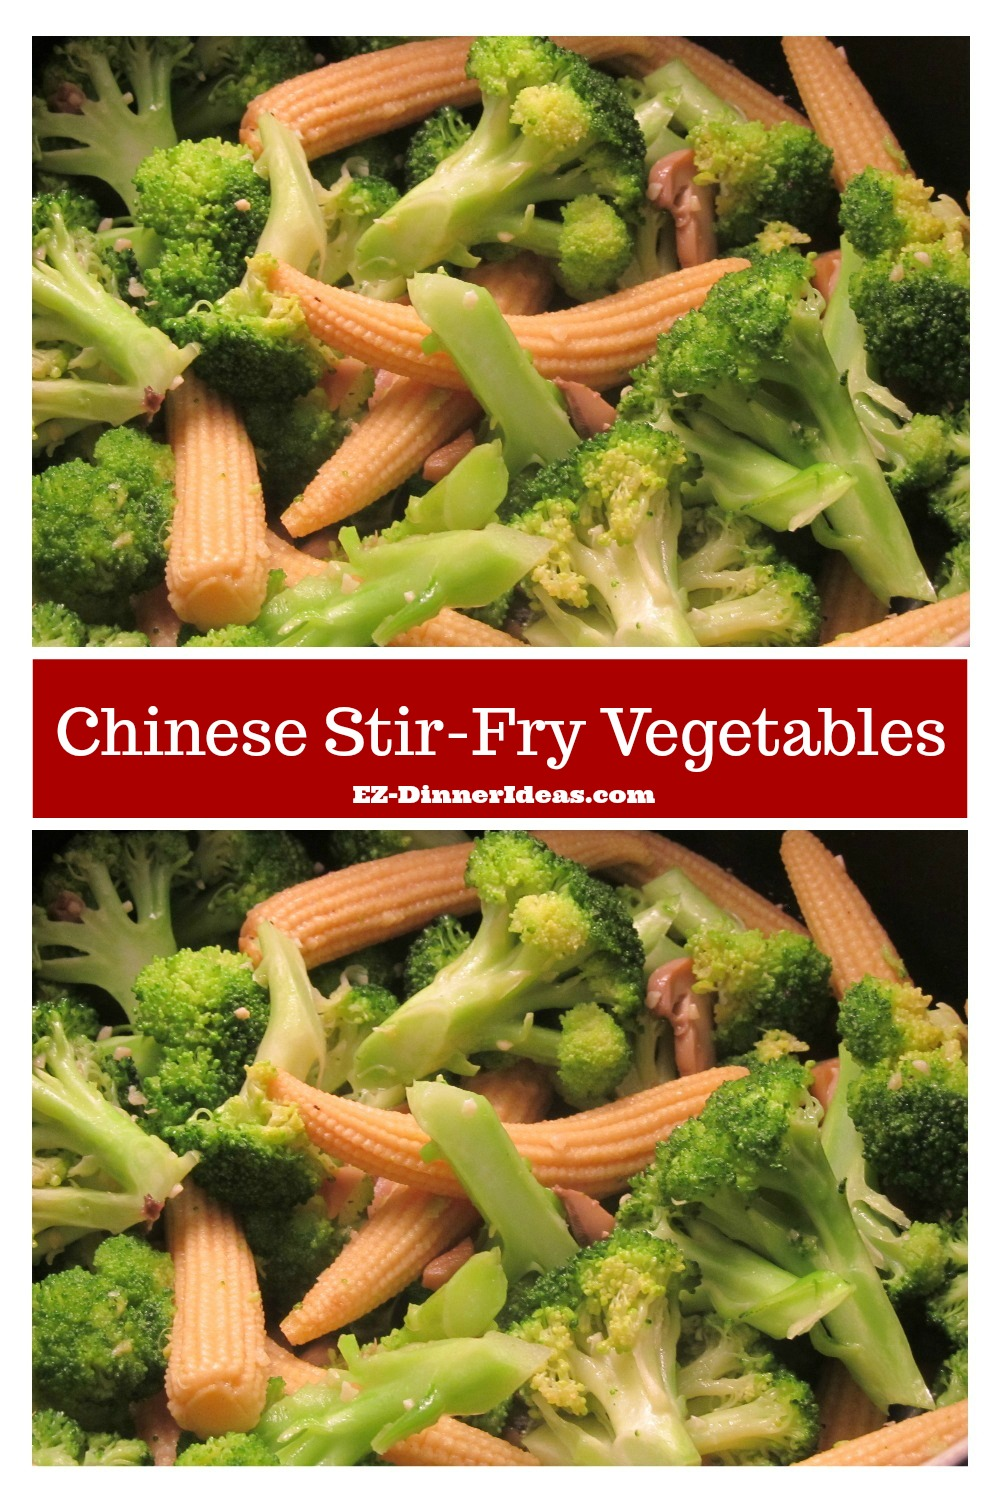 This Chinese stir-fry vegetables dish is delicious and easy.  It can be a side dish or a healthy dinner make you feel awesome.